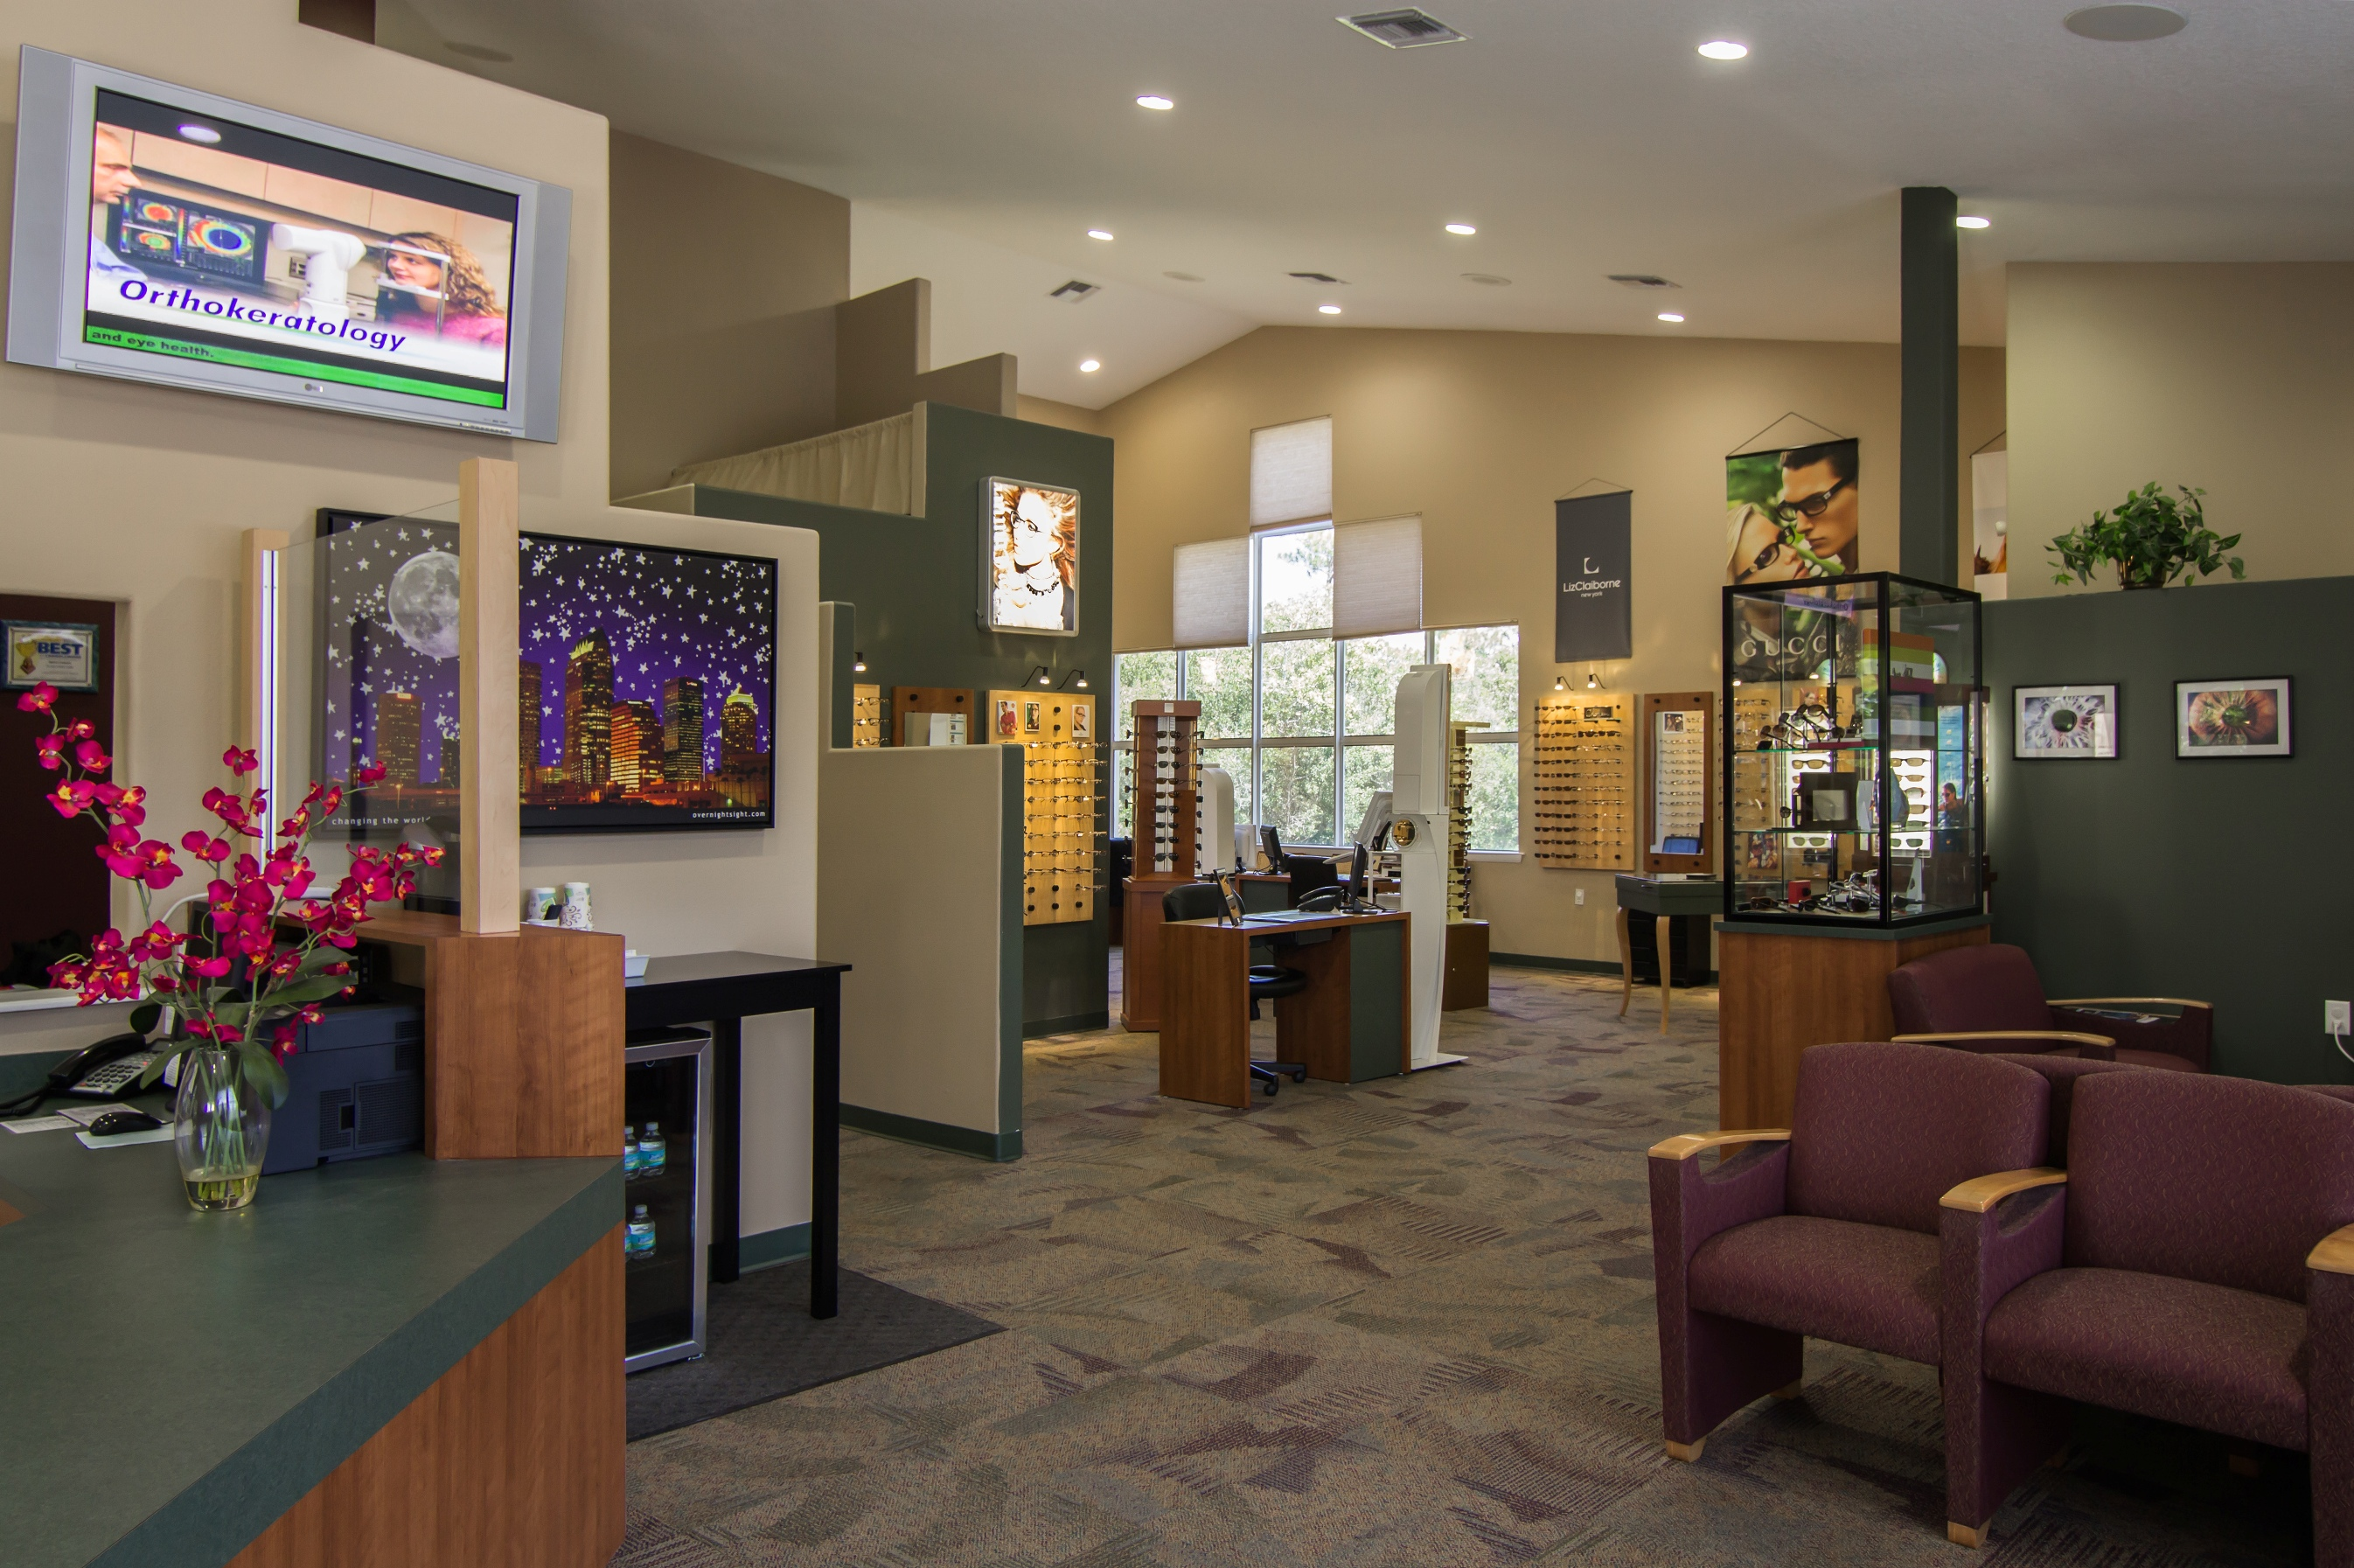 St. Lucy's Vision Center image 0